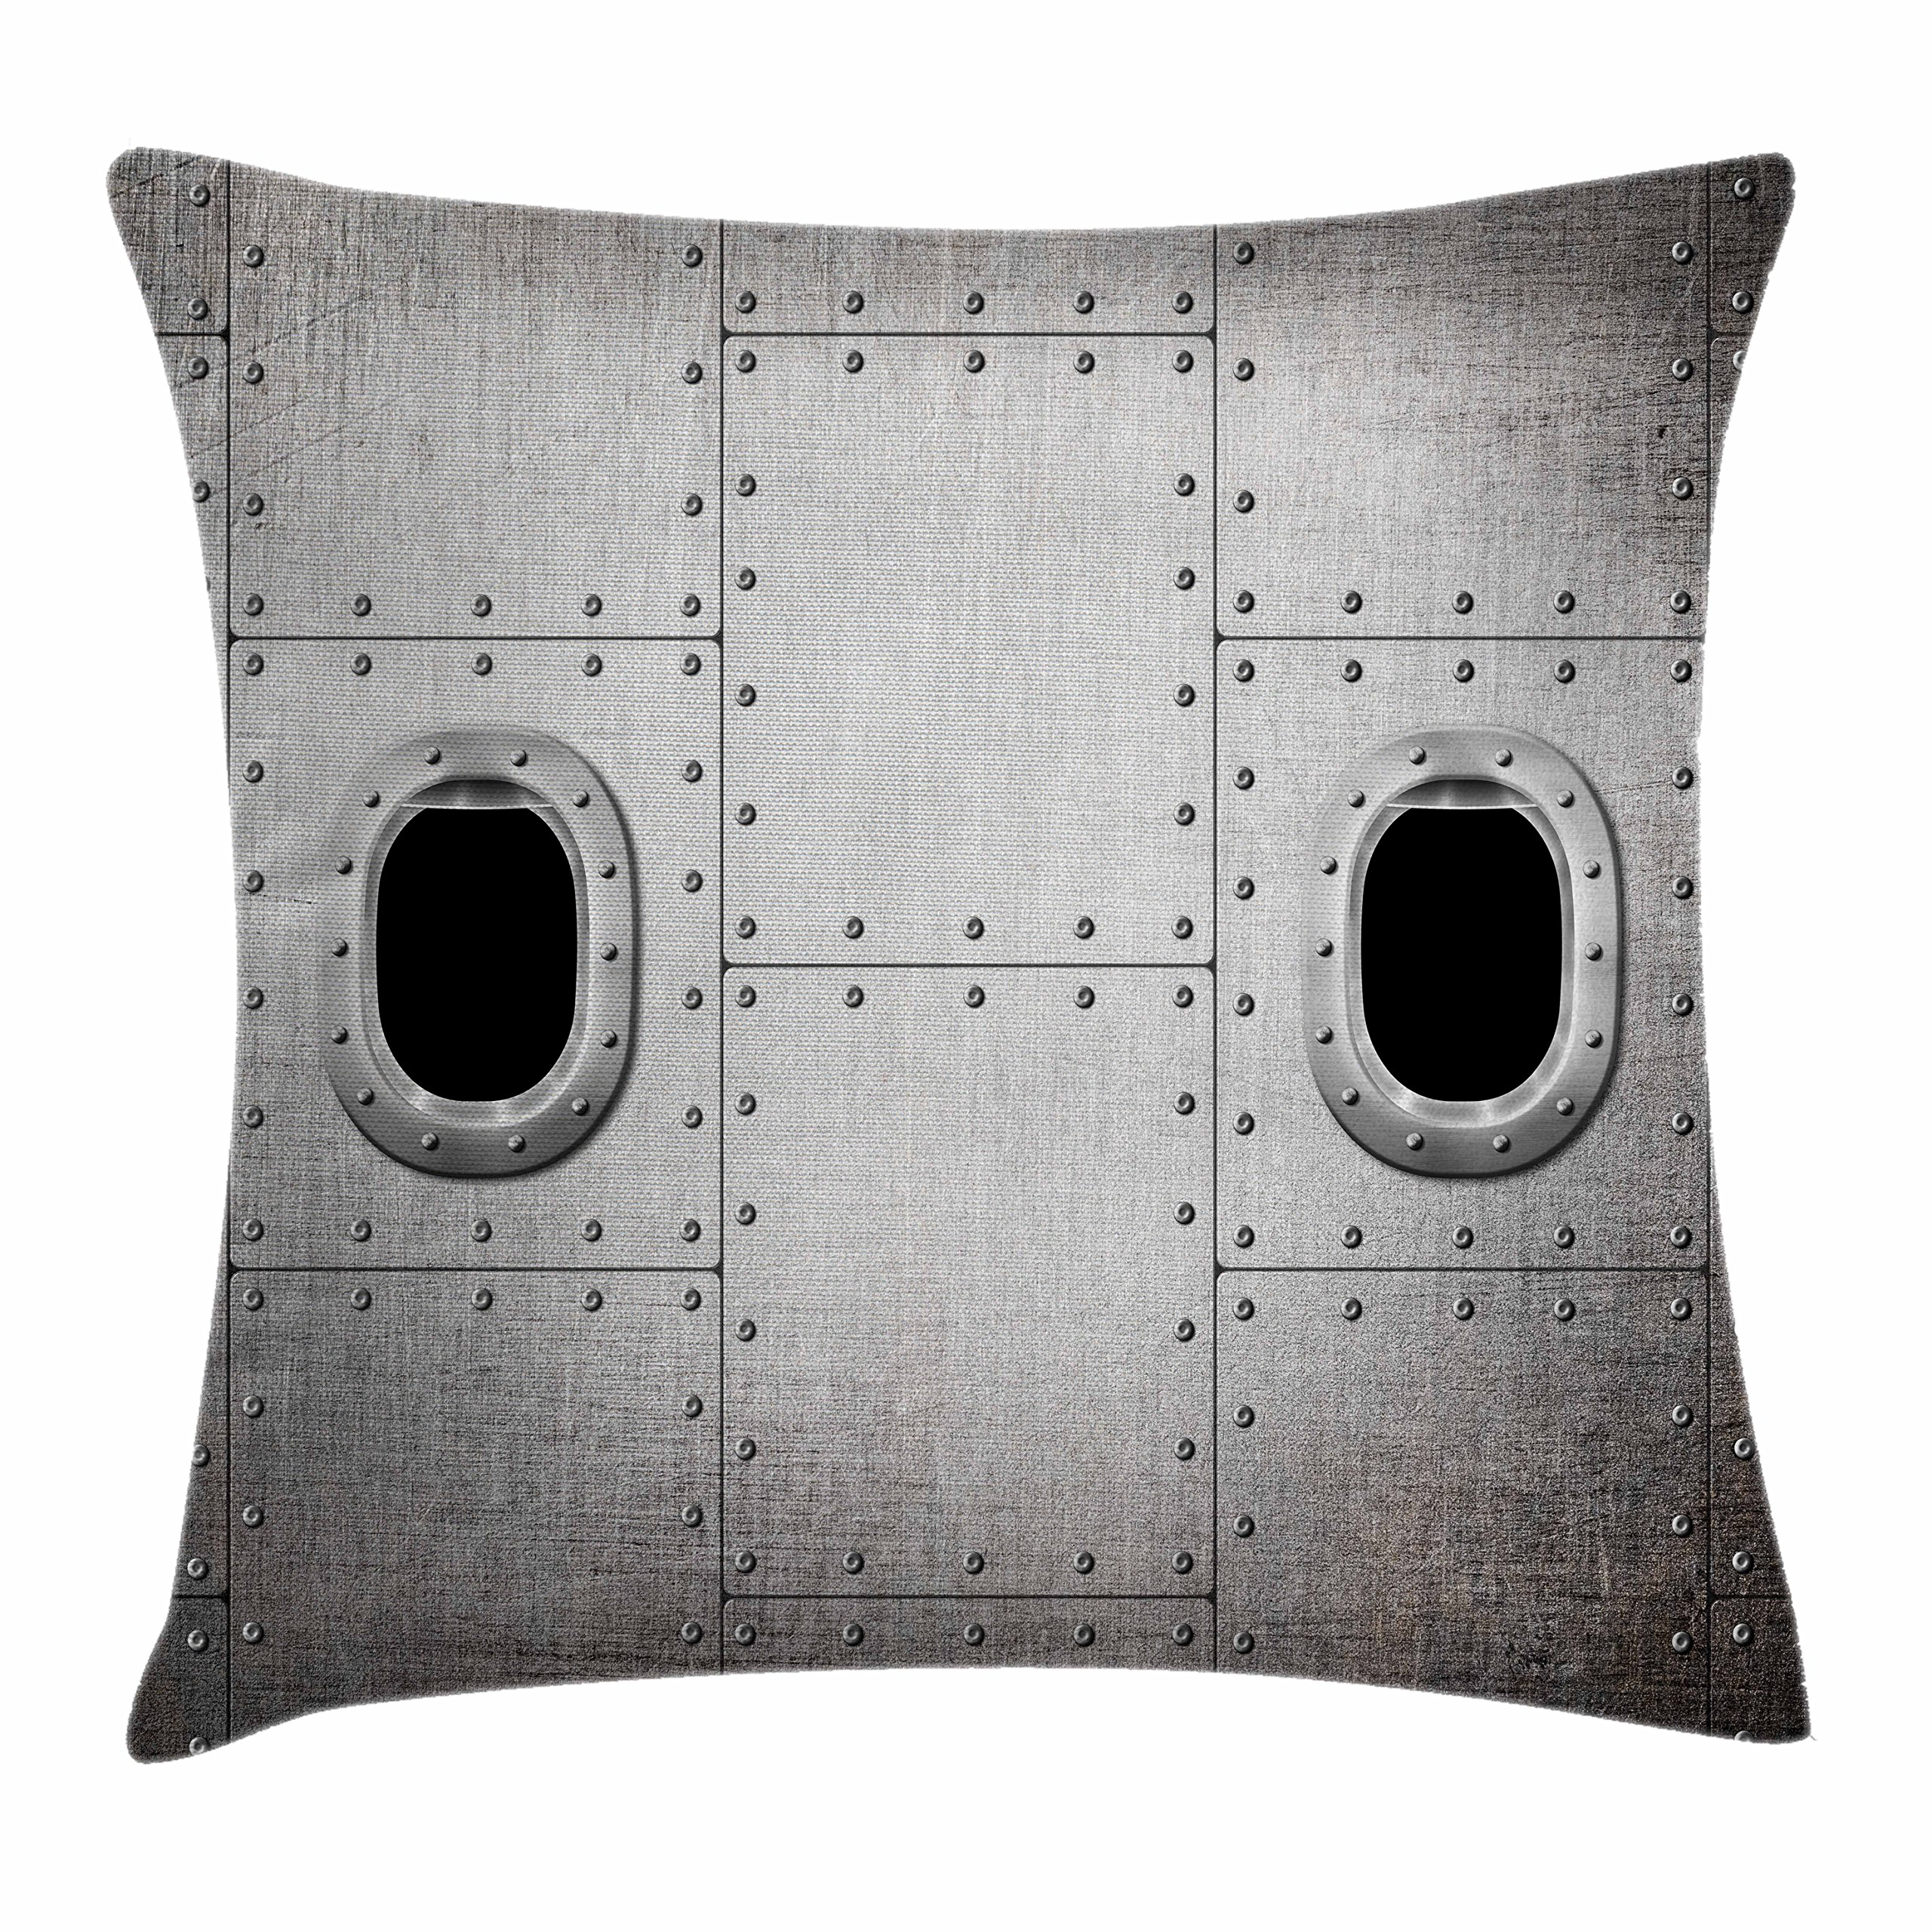 Ambesonne Vintage Airplane Throw Pillow Cushion Cover, Airplane Windows Close up Image Detailed Steampunk Style Illustration, Decorative Square Accent Pillow Case, 36 X 36 inches, Grey Black